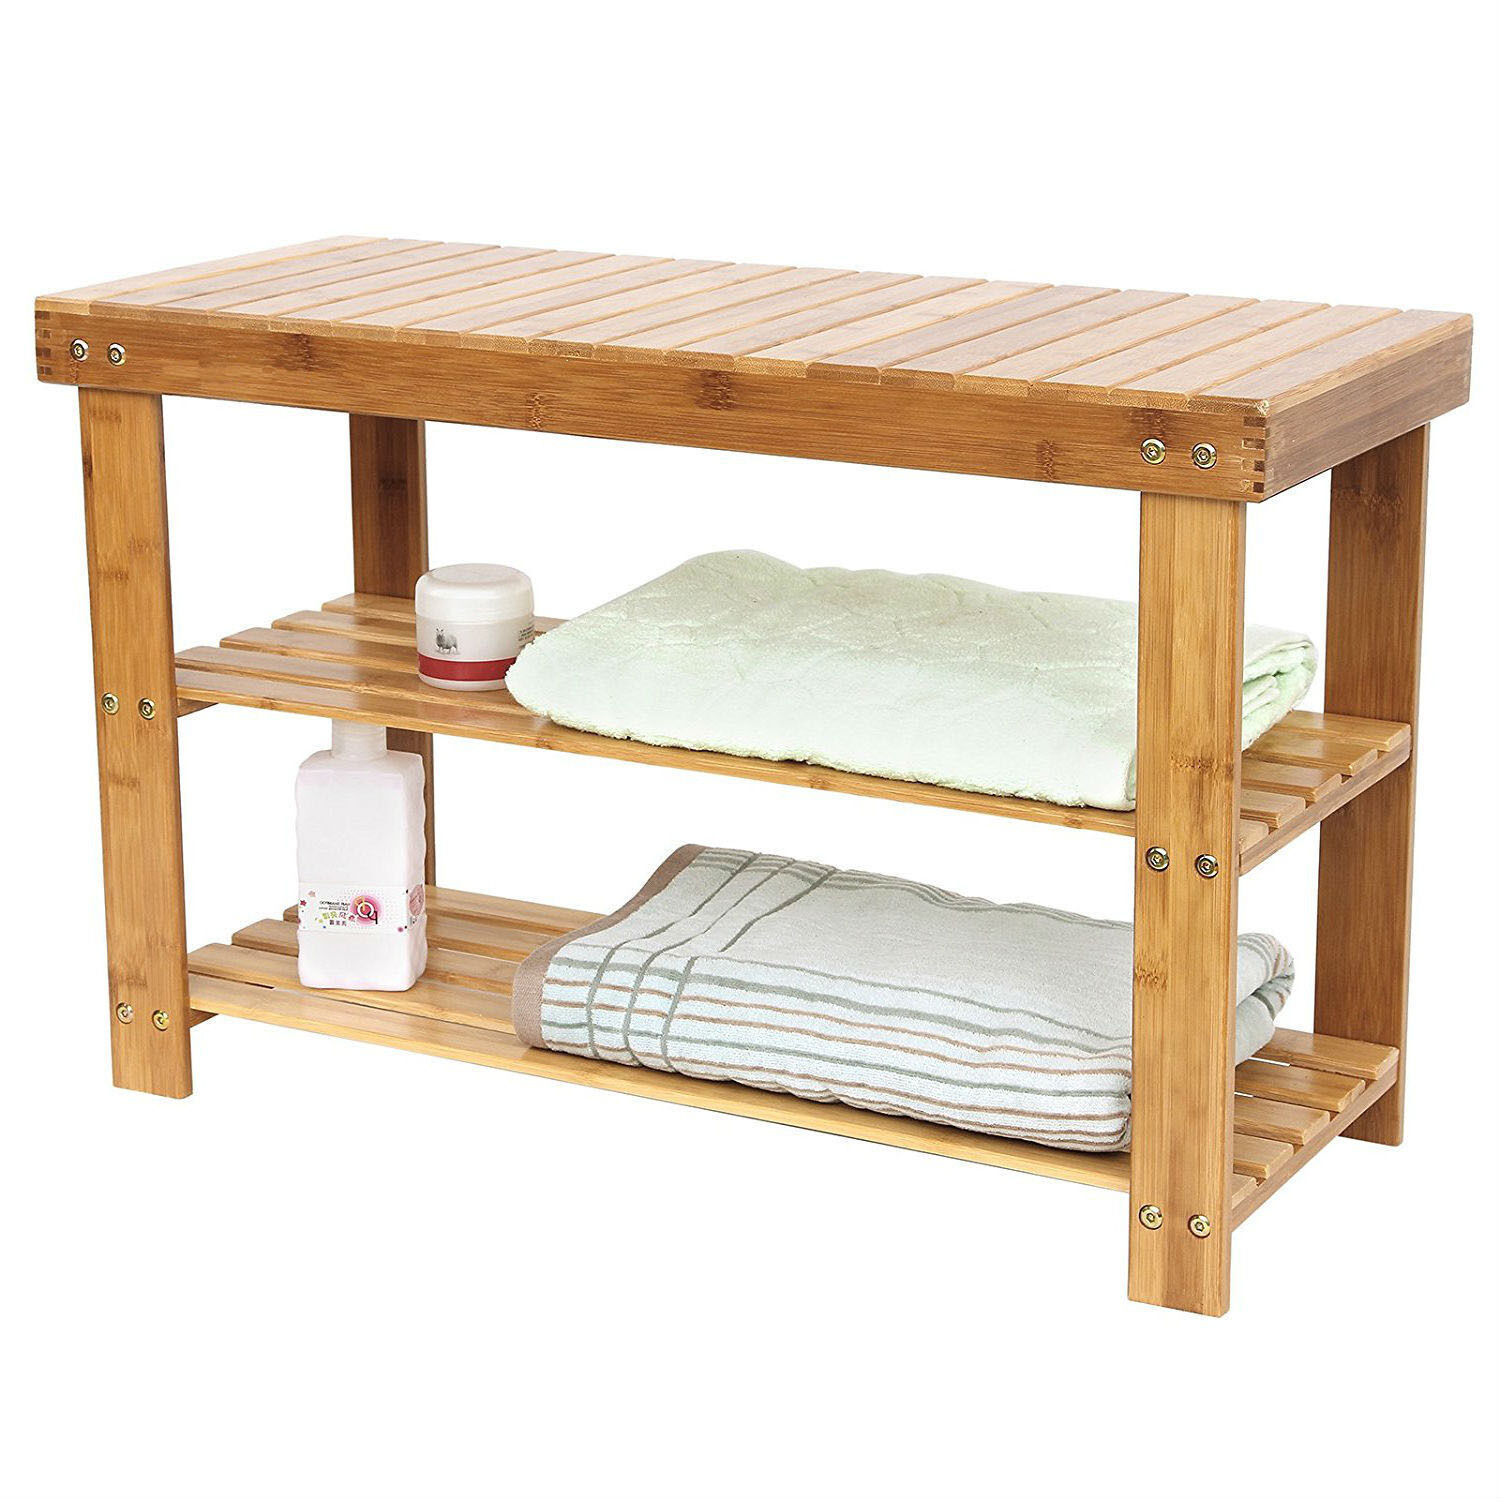 entryway benches with storage organizing | Zimtown Shoe Bench Rack 2-Tier Natural Bamboo Shelf ...